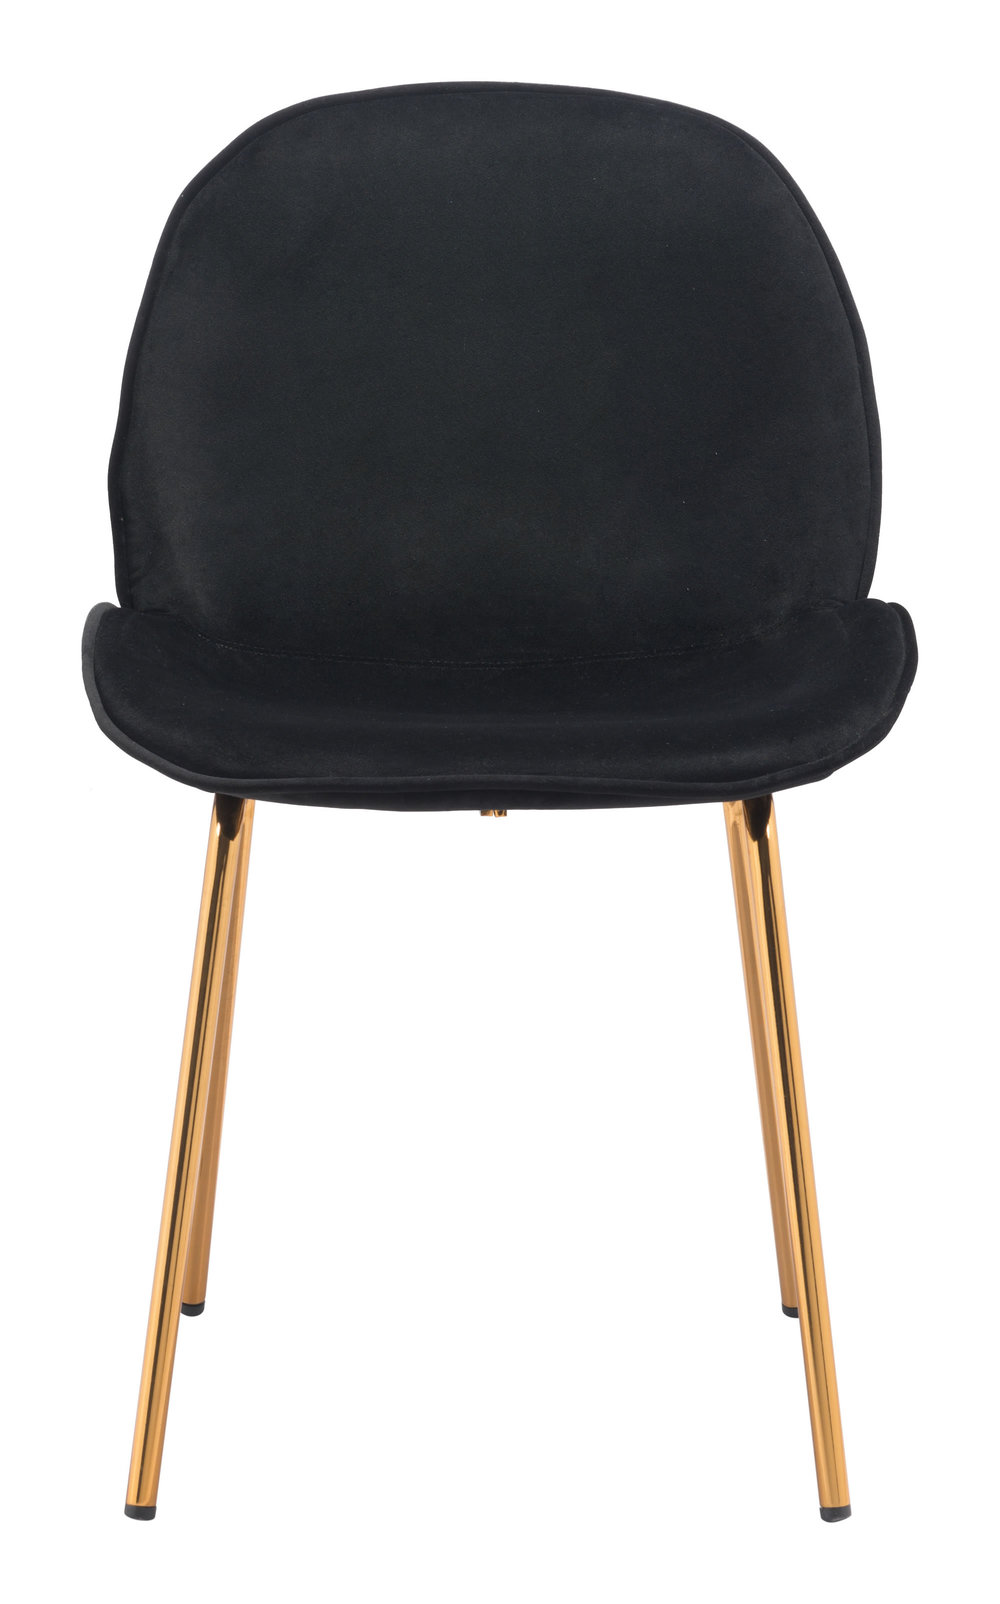 Zuo Modern Contemporary - Siena Dining Chair - Set of 2 - Black